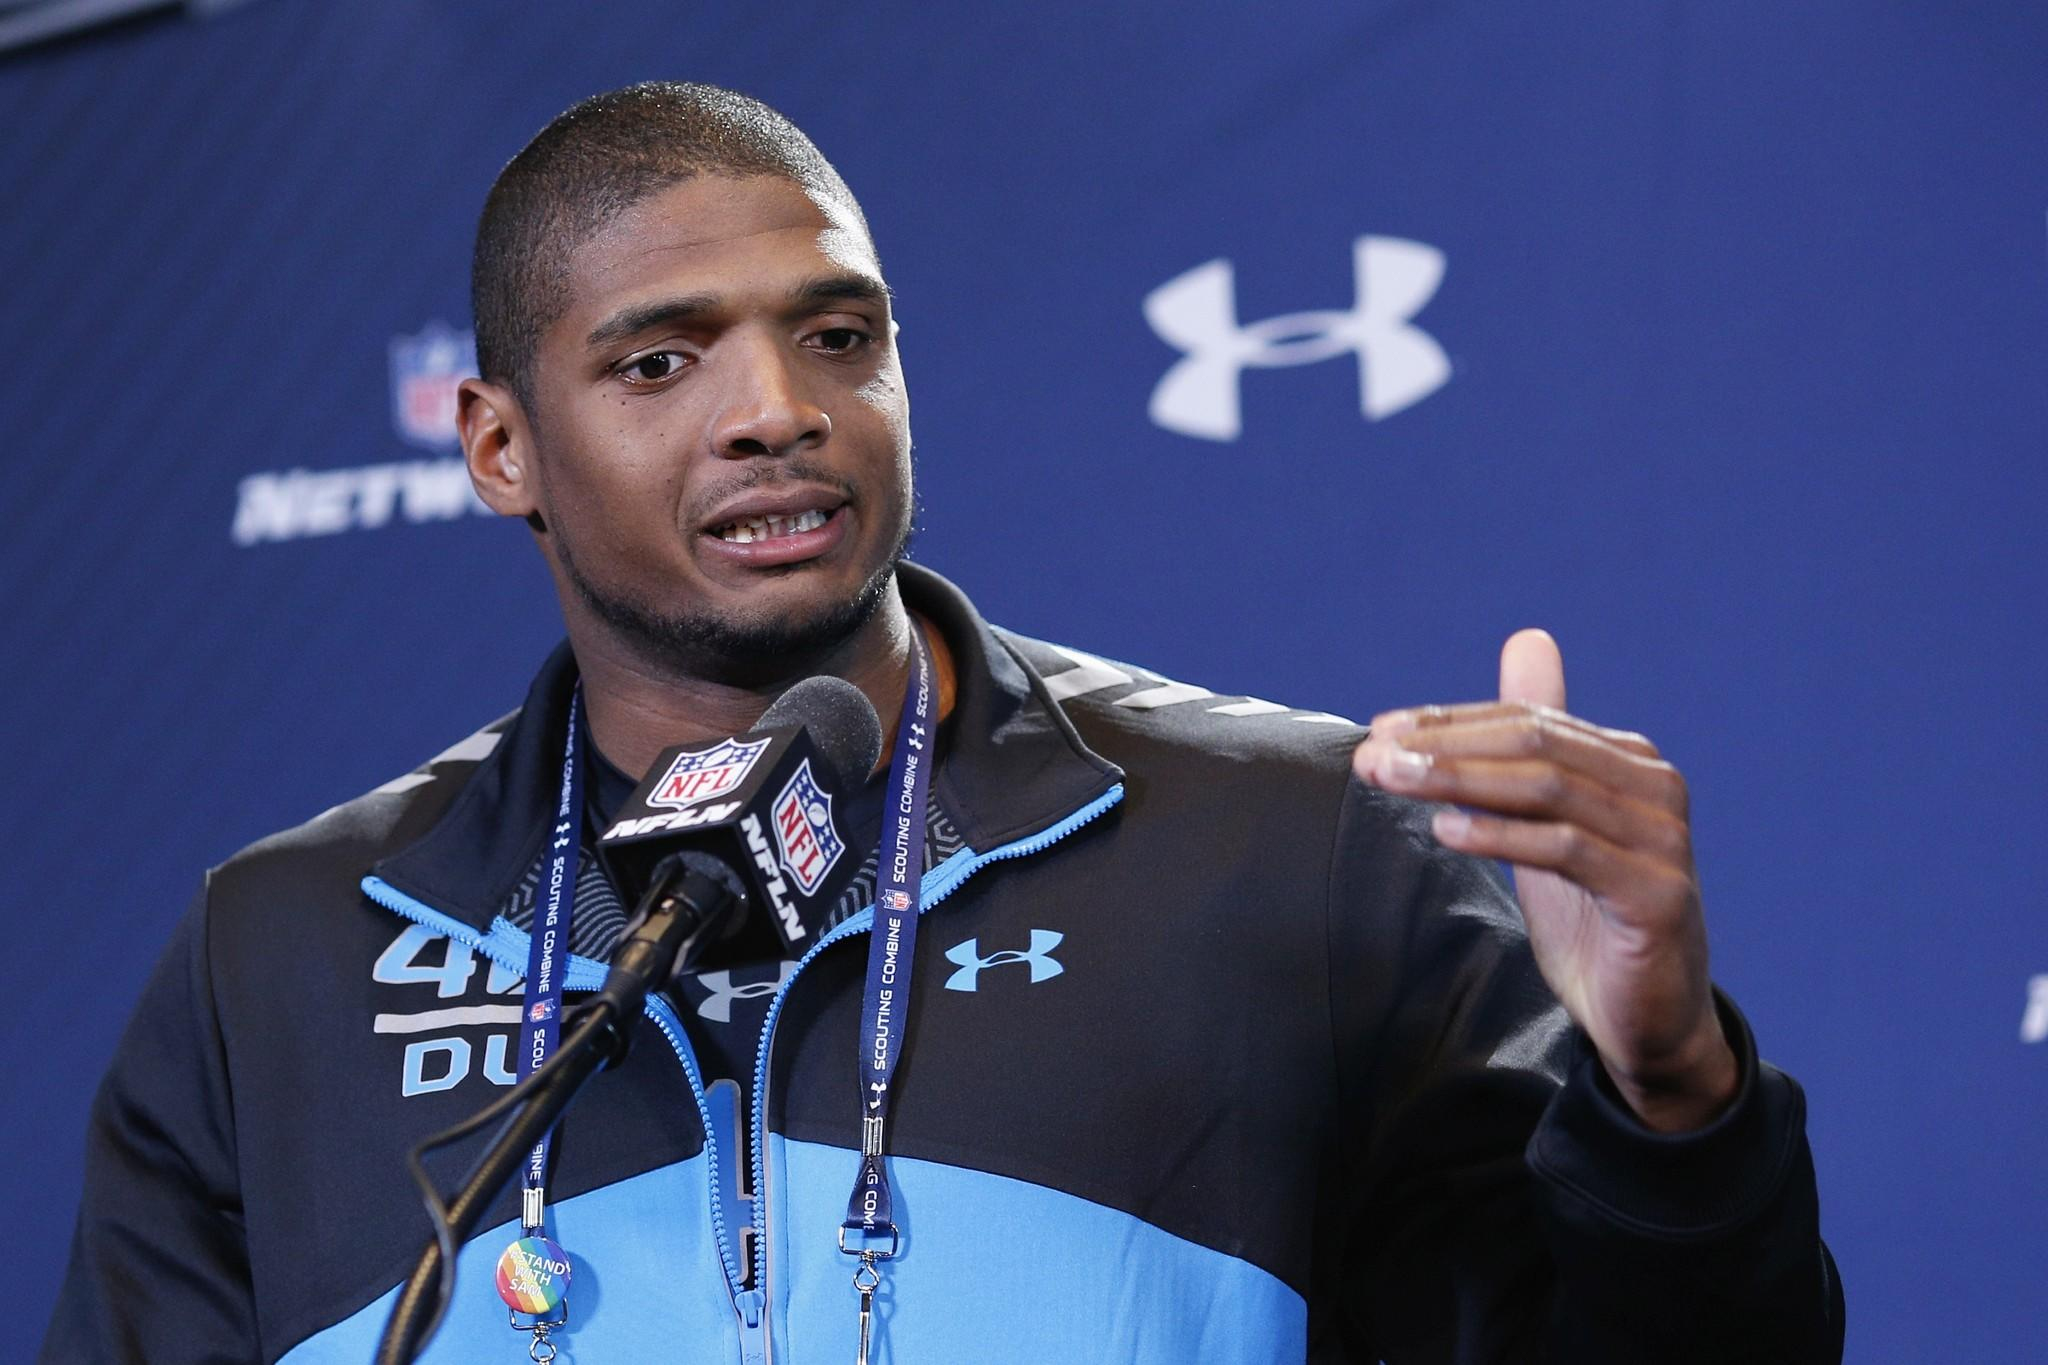 Former Missouri defensive lineman Michael Sam speaks to the media during the 2014 NFL Combine at Lucas Oil Stadium in Indianapolis.